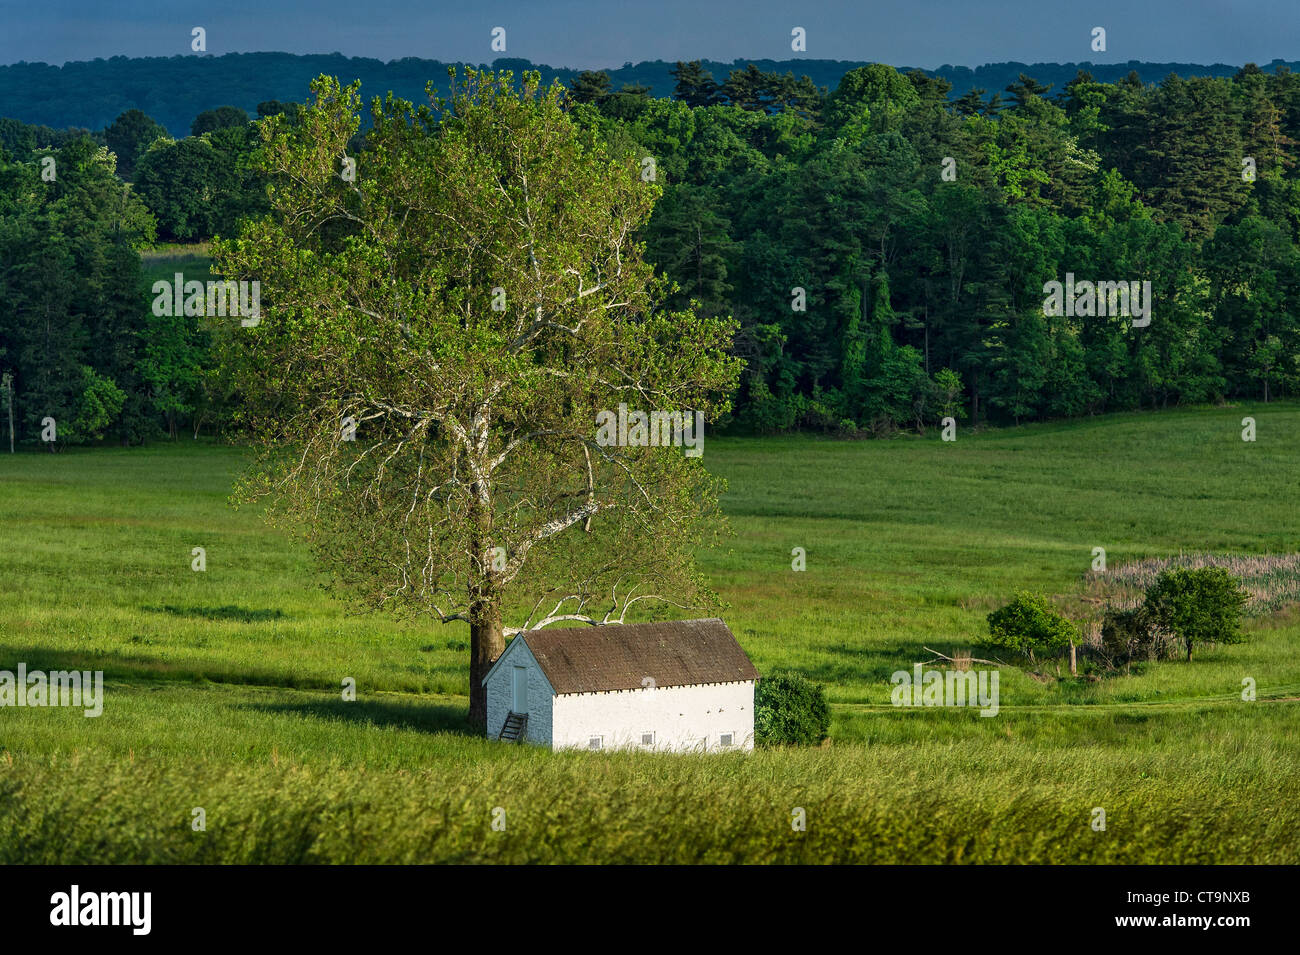 Ländliche Quellenhaus in üppigen pastorale Landschaft, Chester County, Pennsylvania, USA Stockbild